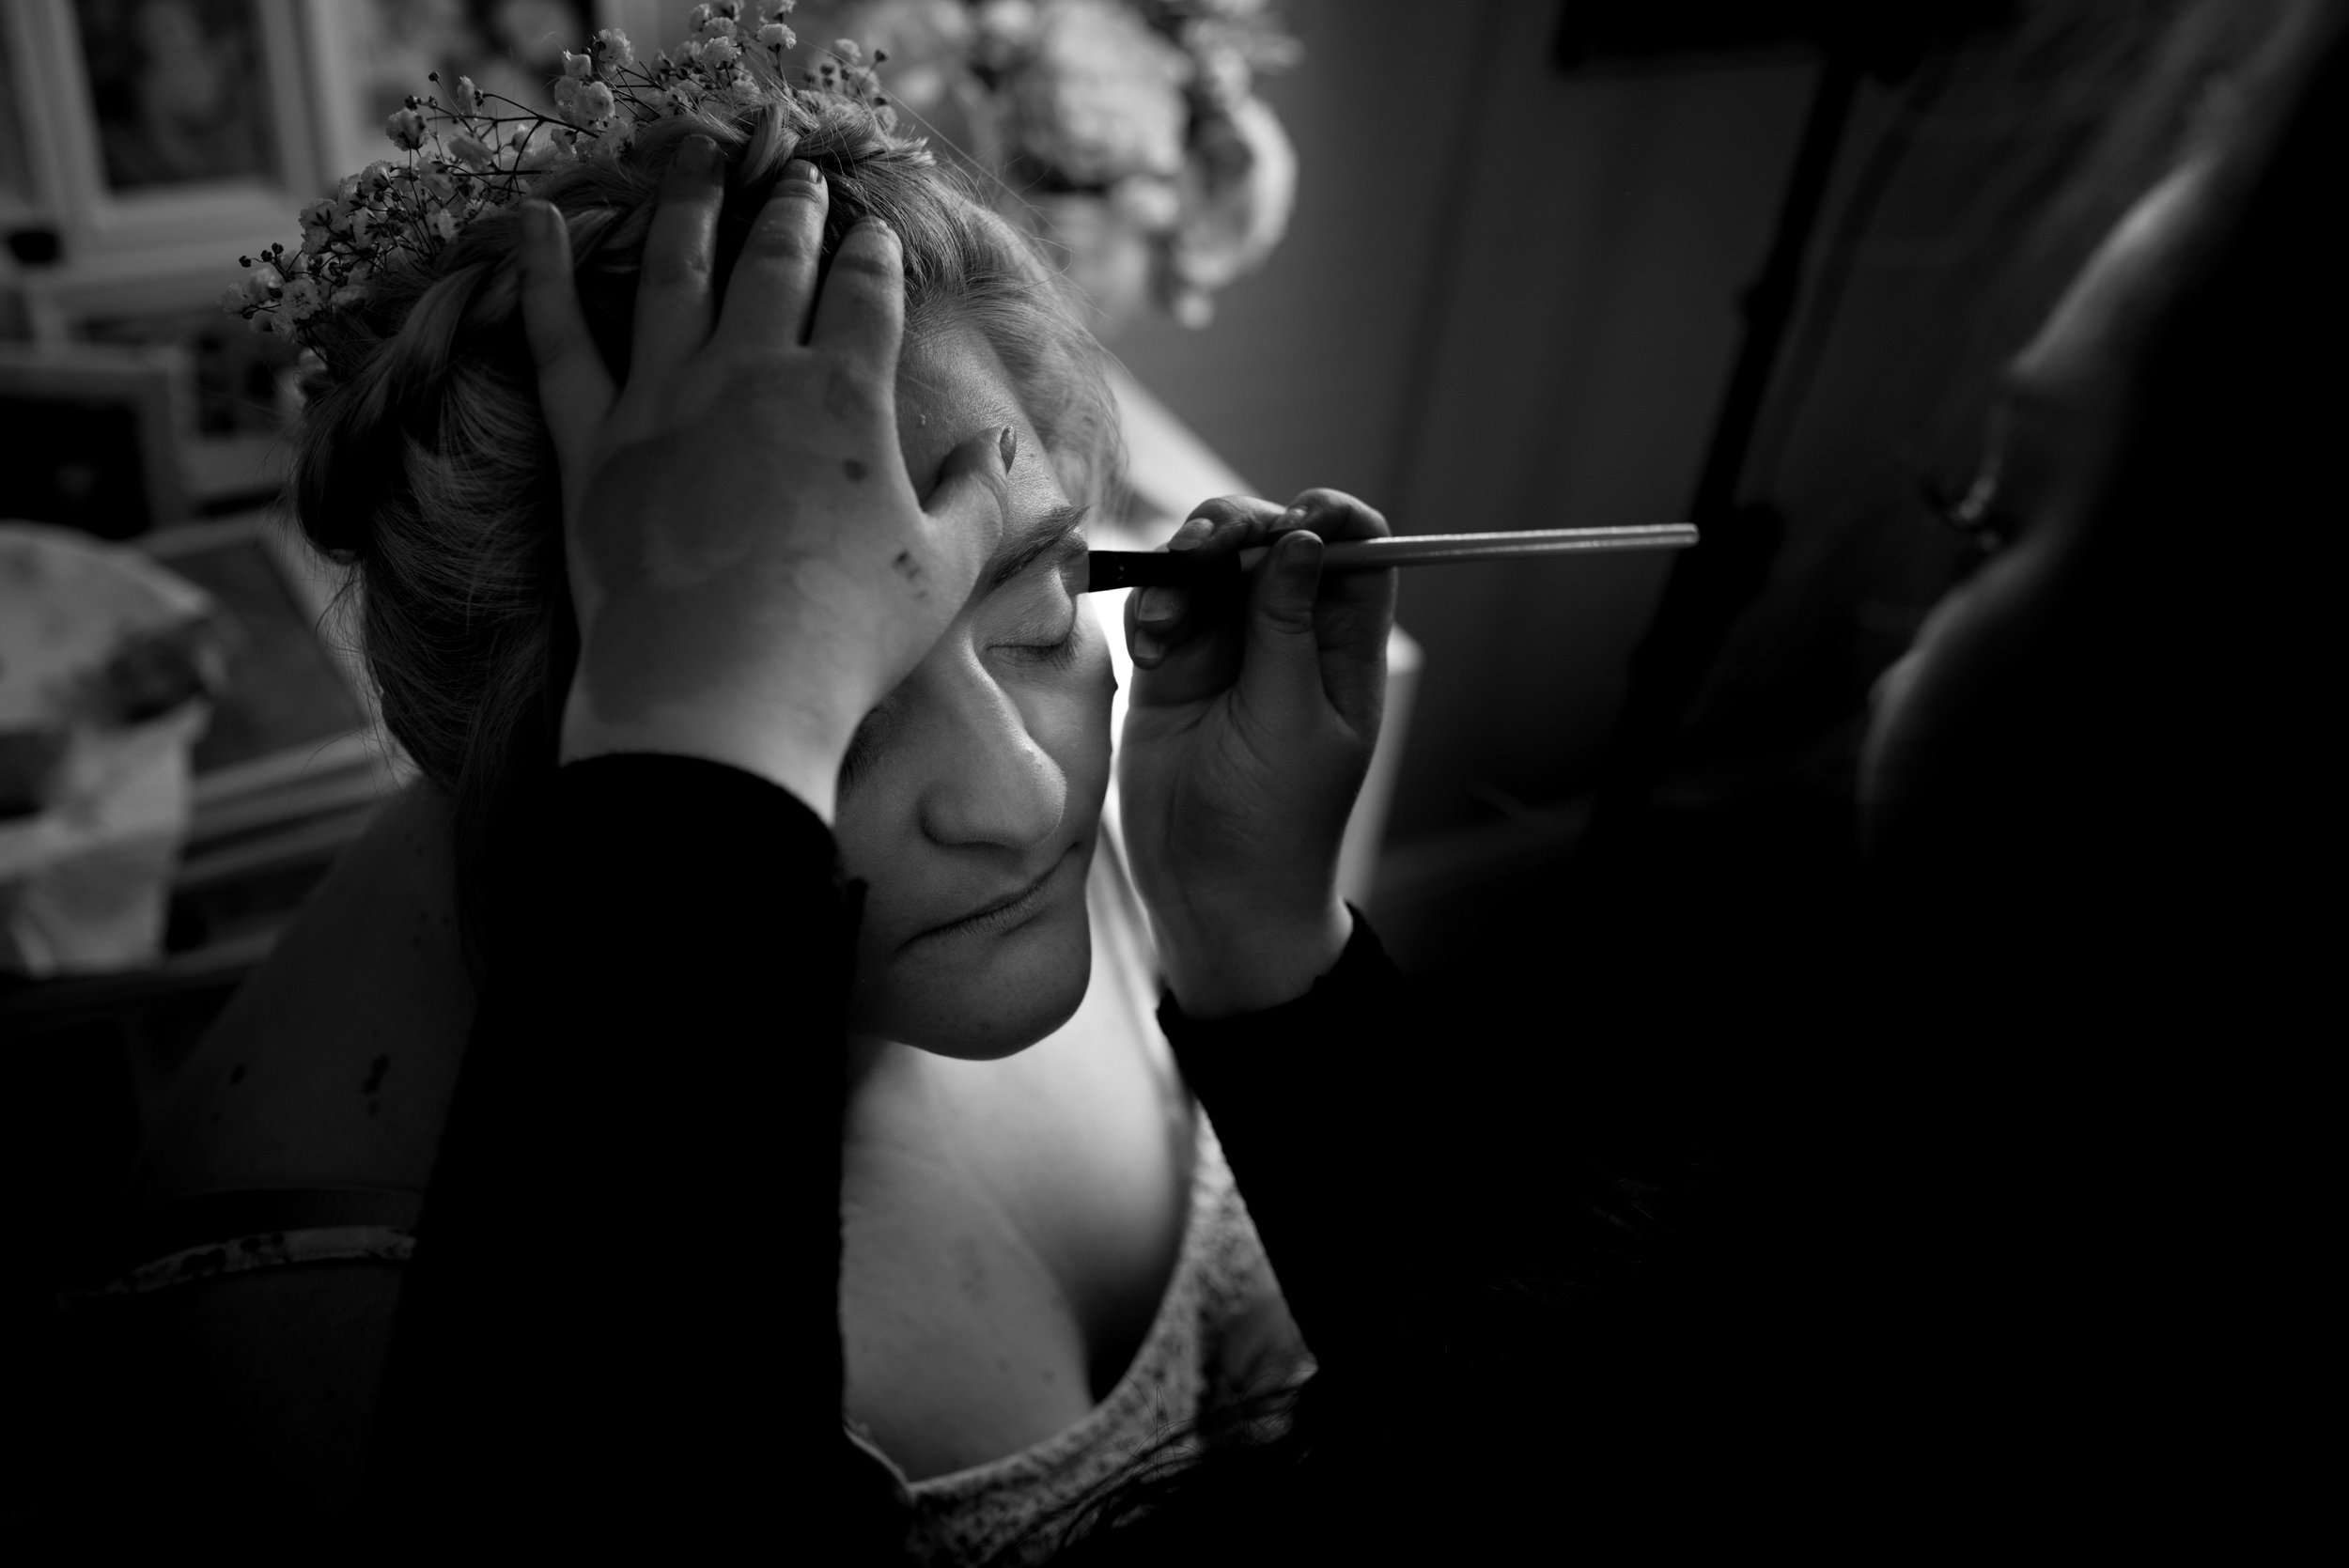 Black and white image of the bride getting her makeup done before the wedding